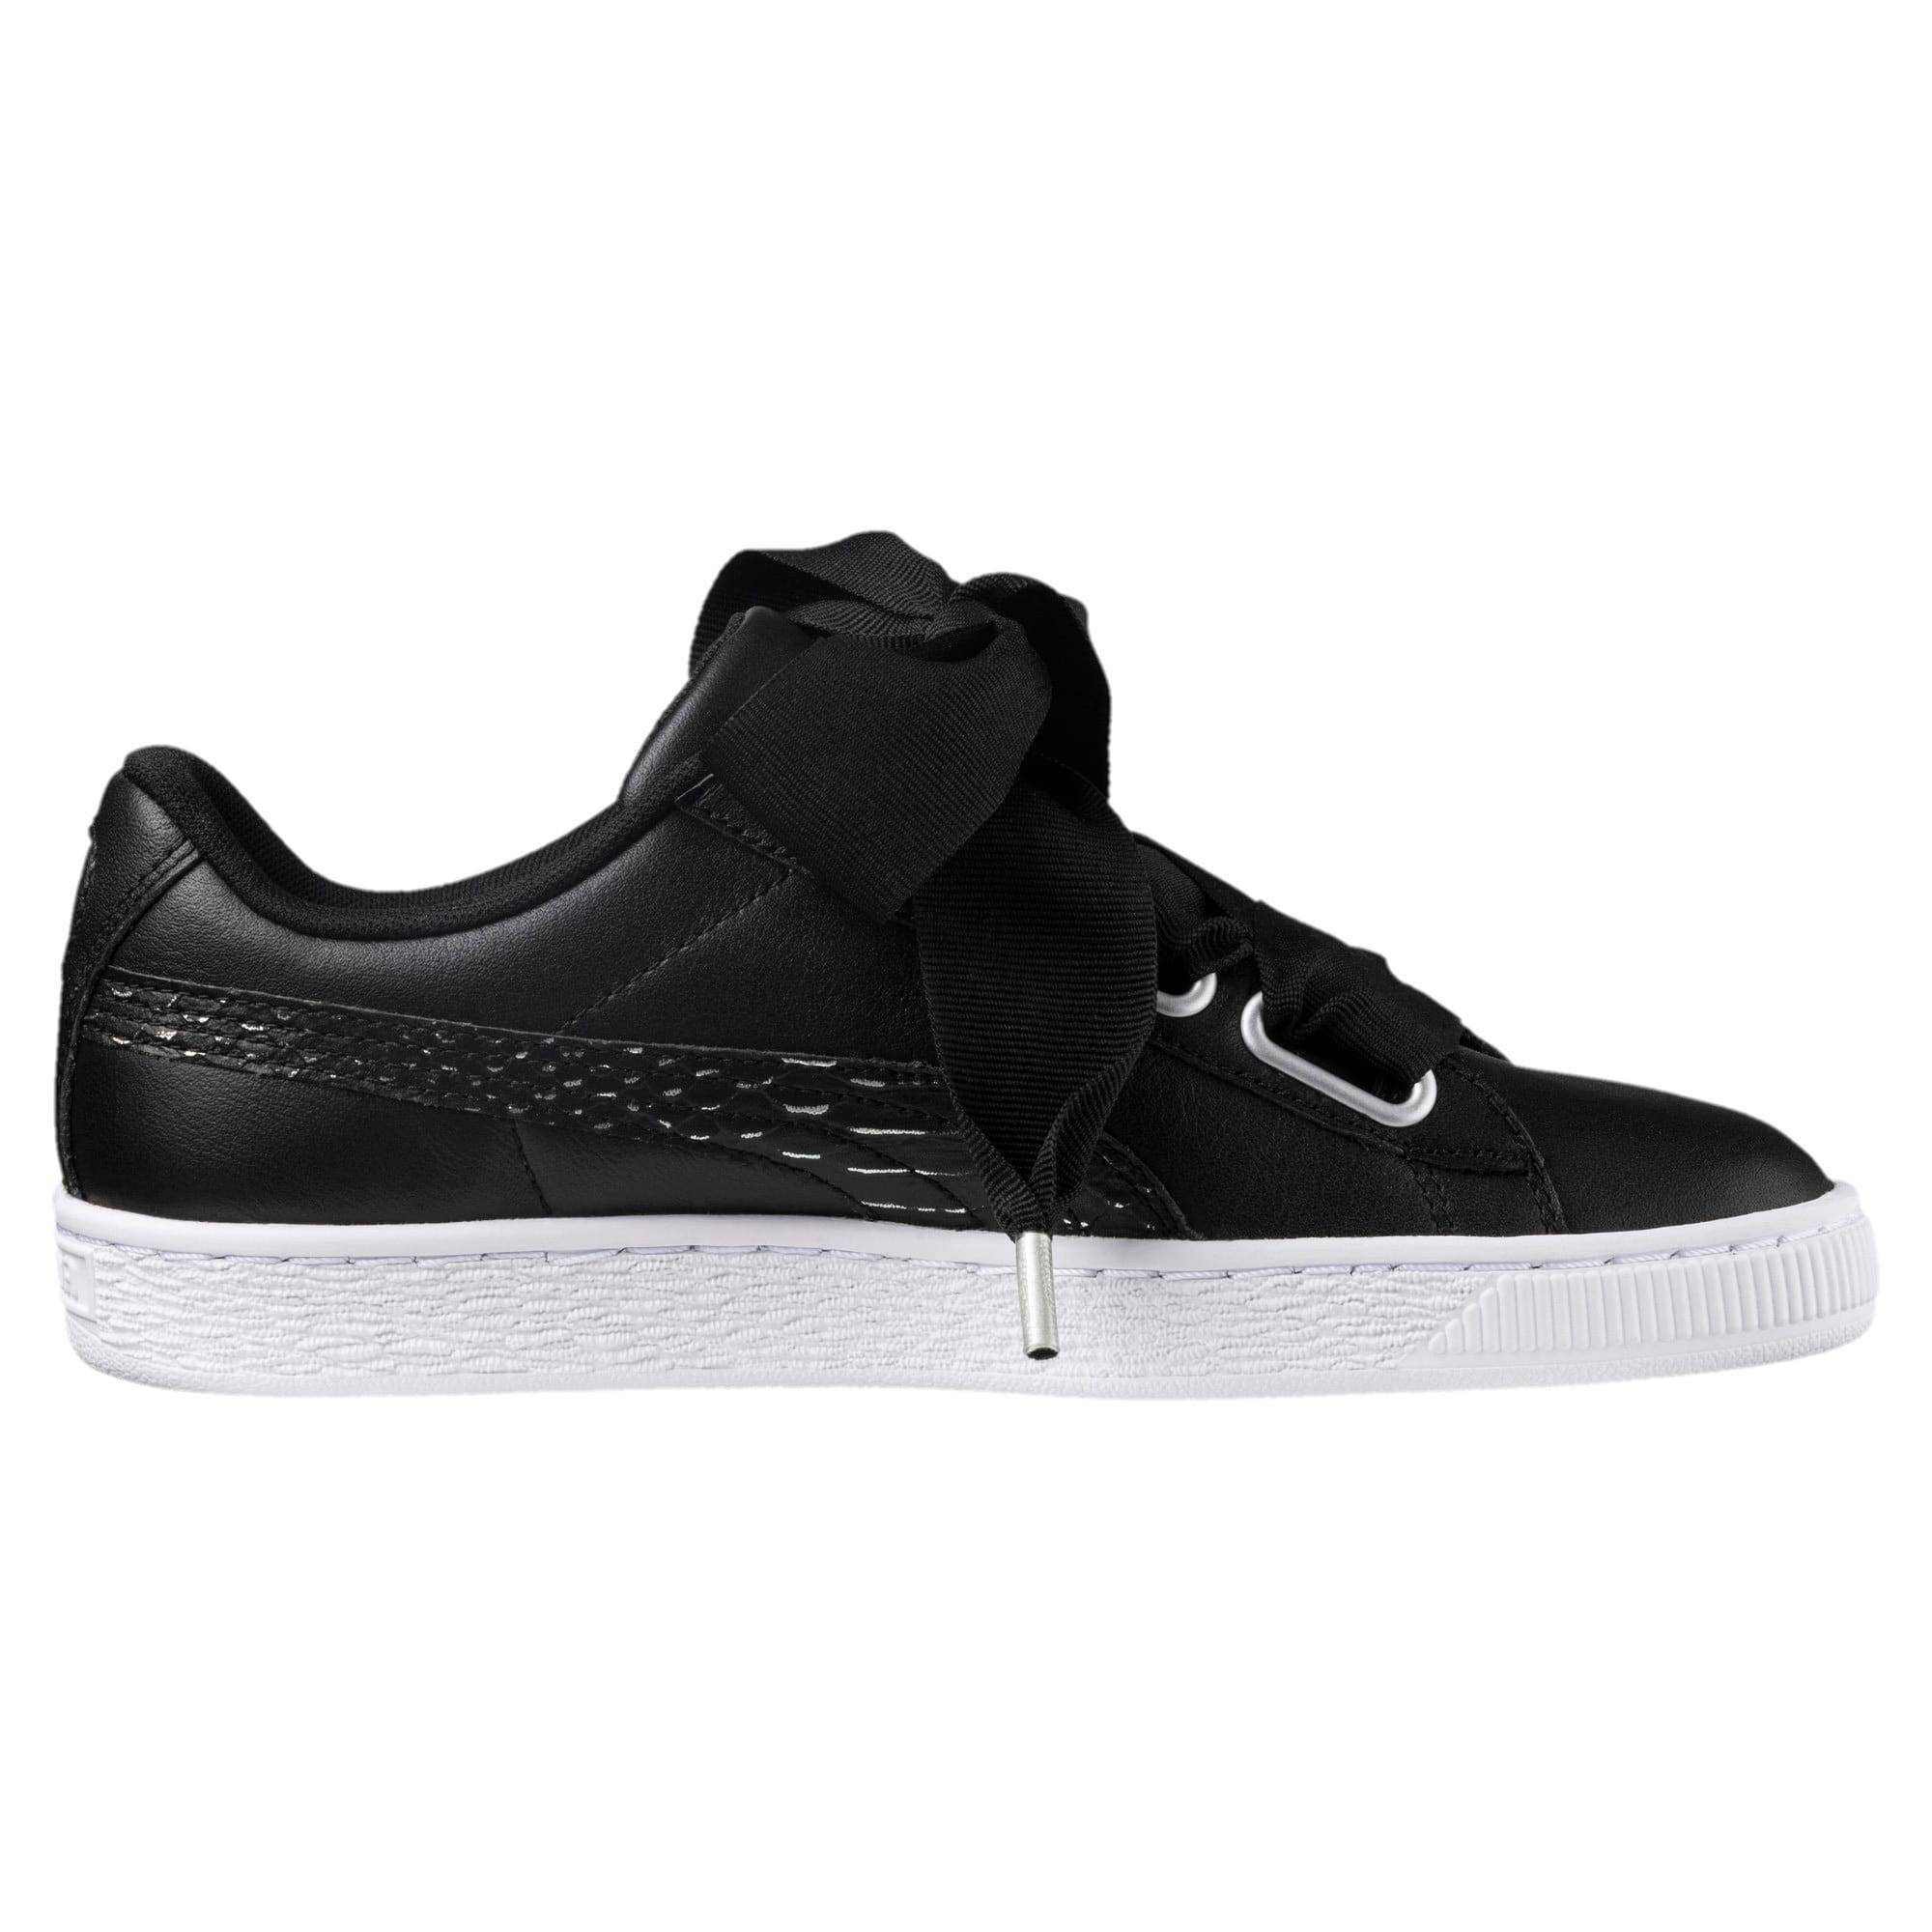 Thumbnail 3 of Basket Heart Oceanaire Women's Trainers, Puma Black-Puma White, medium-IND